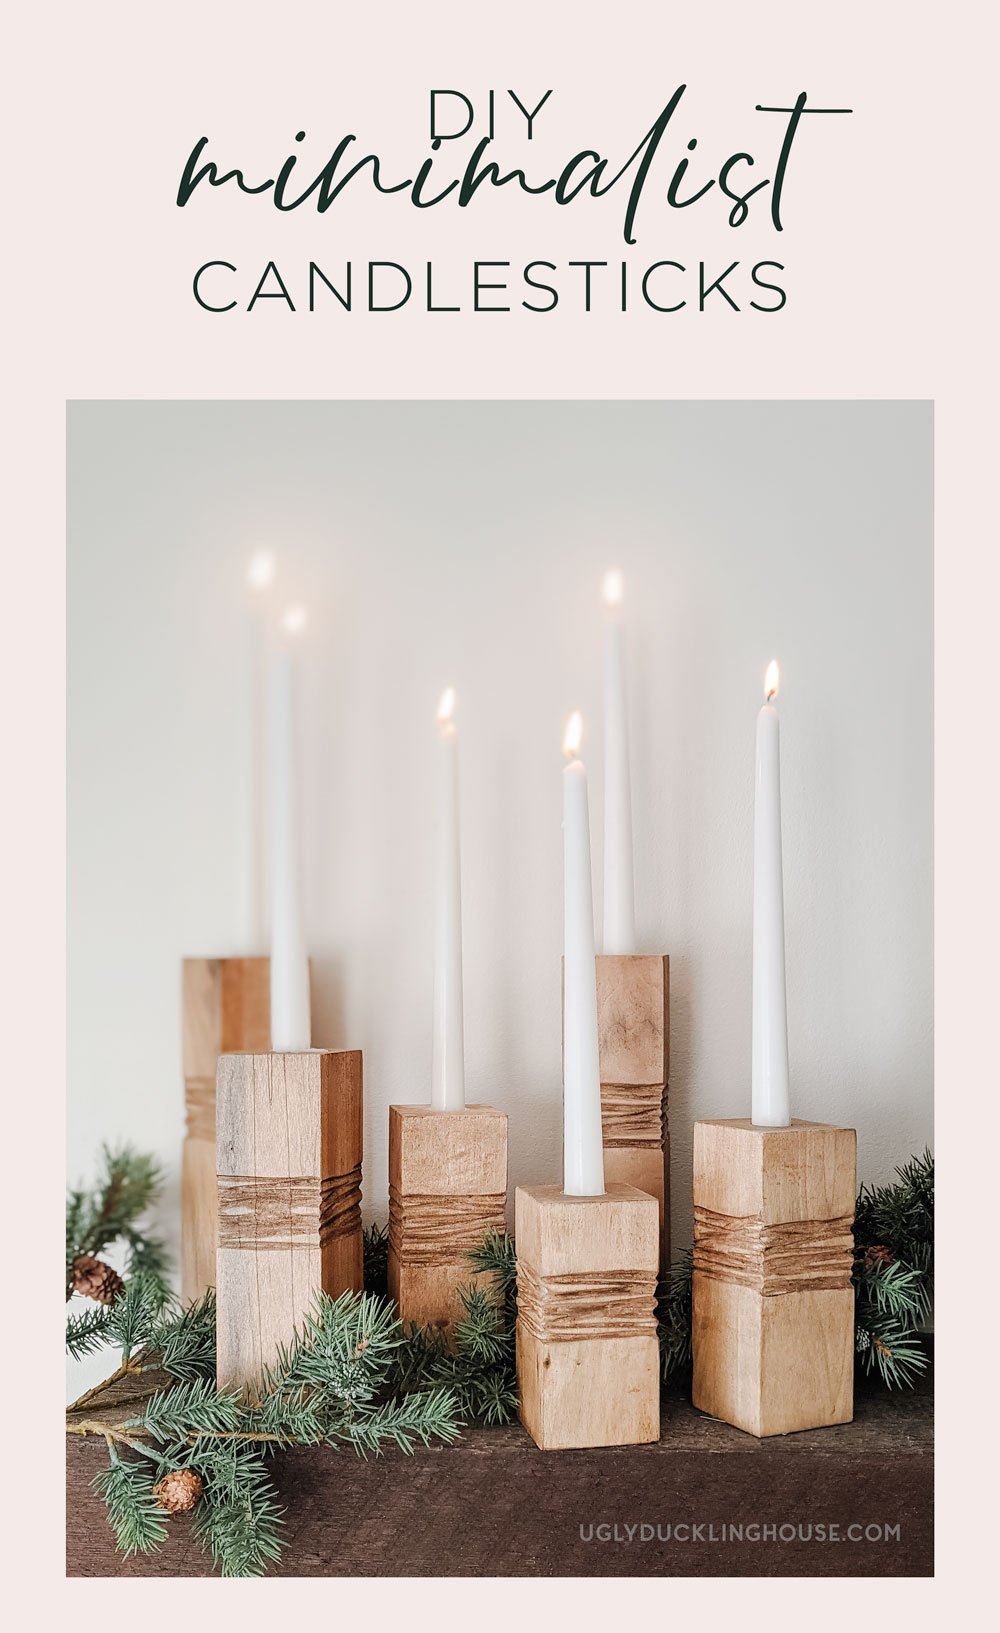 DIY minimalist wooden candle holders with tapered white candles as Christmas decor